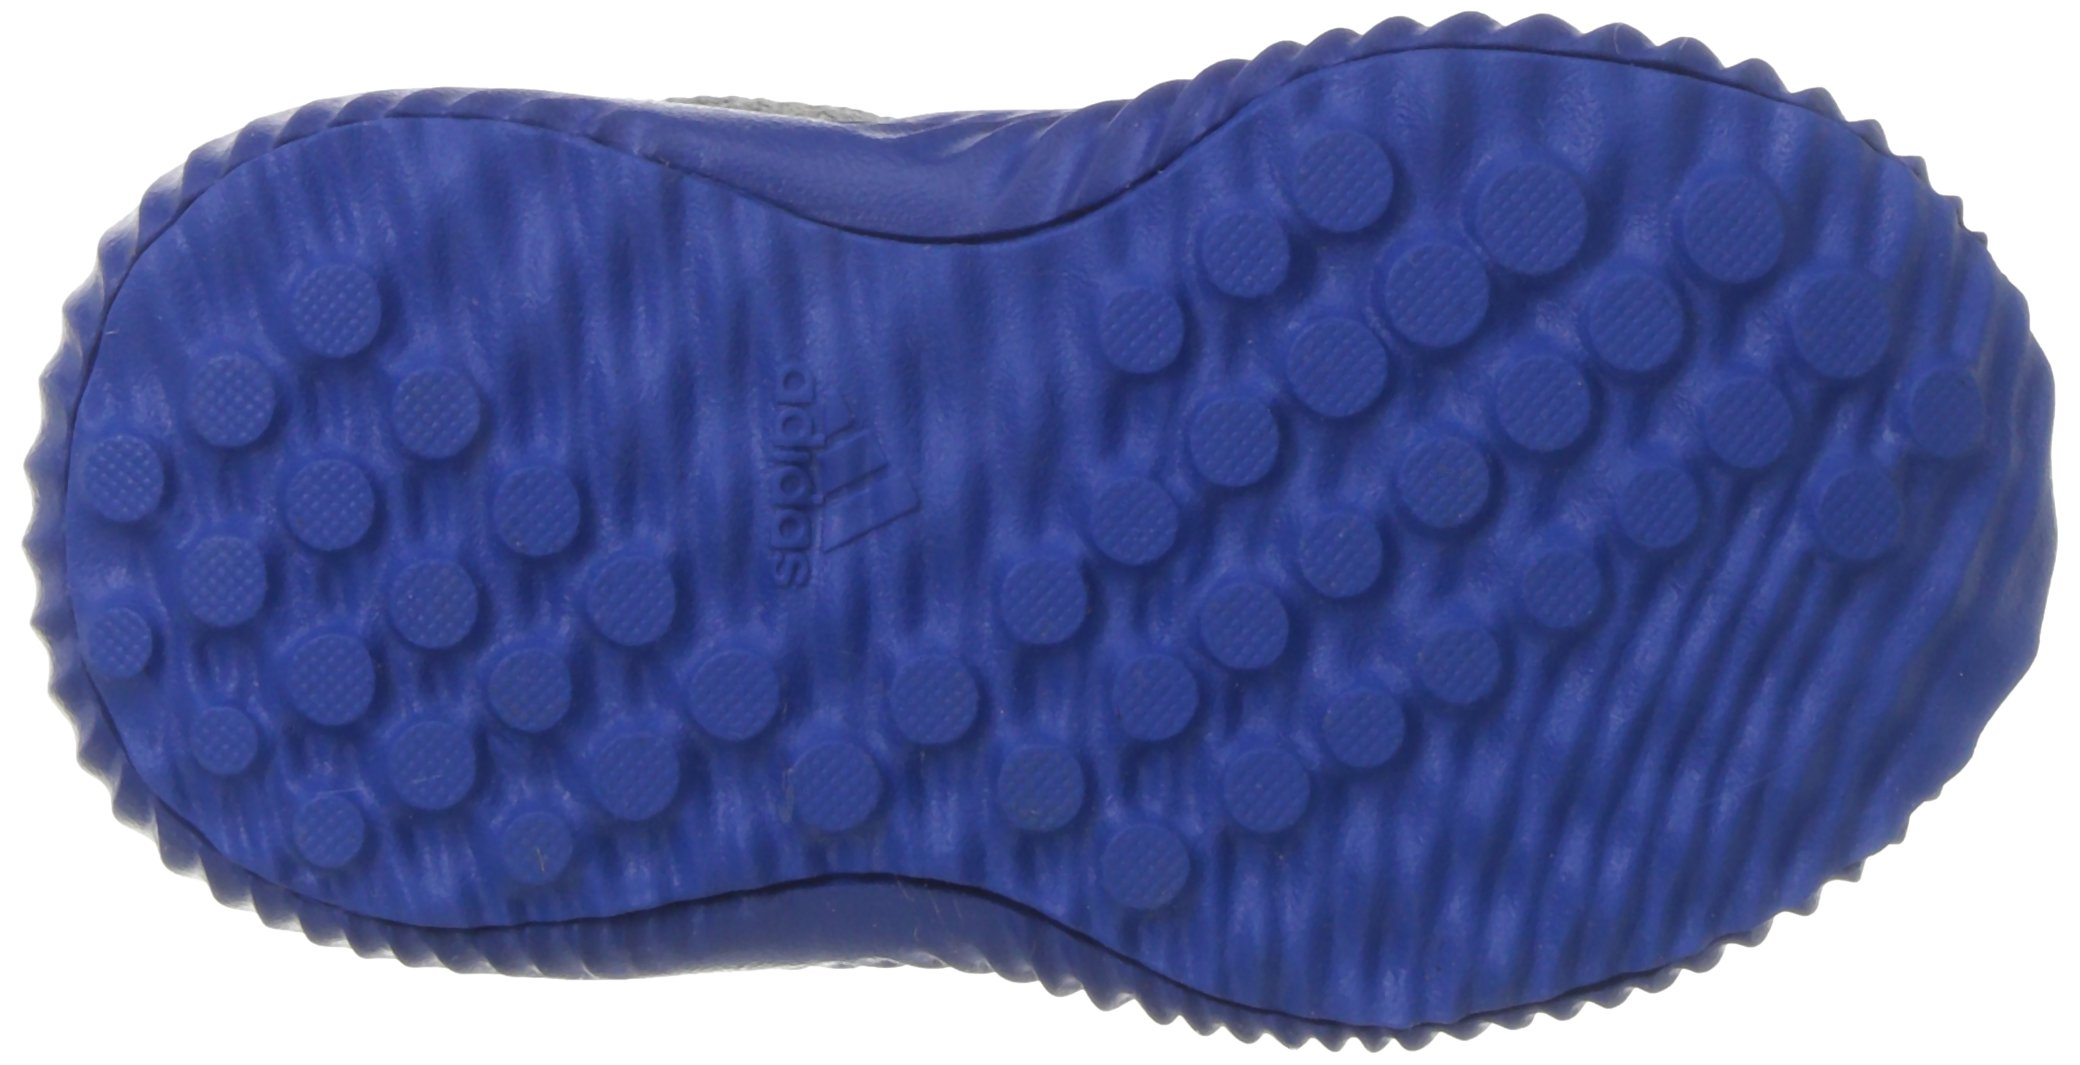 adidas Kids' Alphabounce Sneaker, Grey/Light Onix/Satellite, 7 M US Toddler by adidas (Image #3)